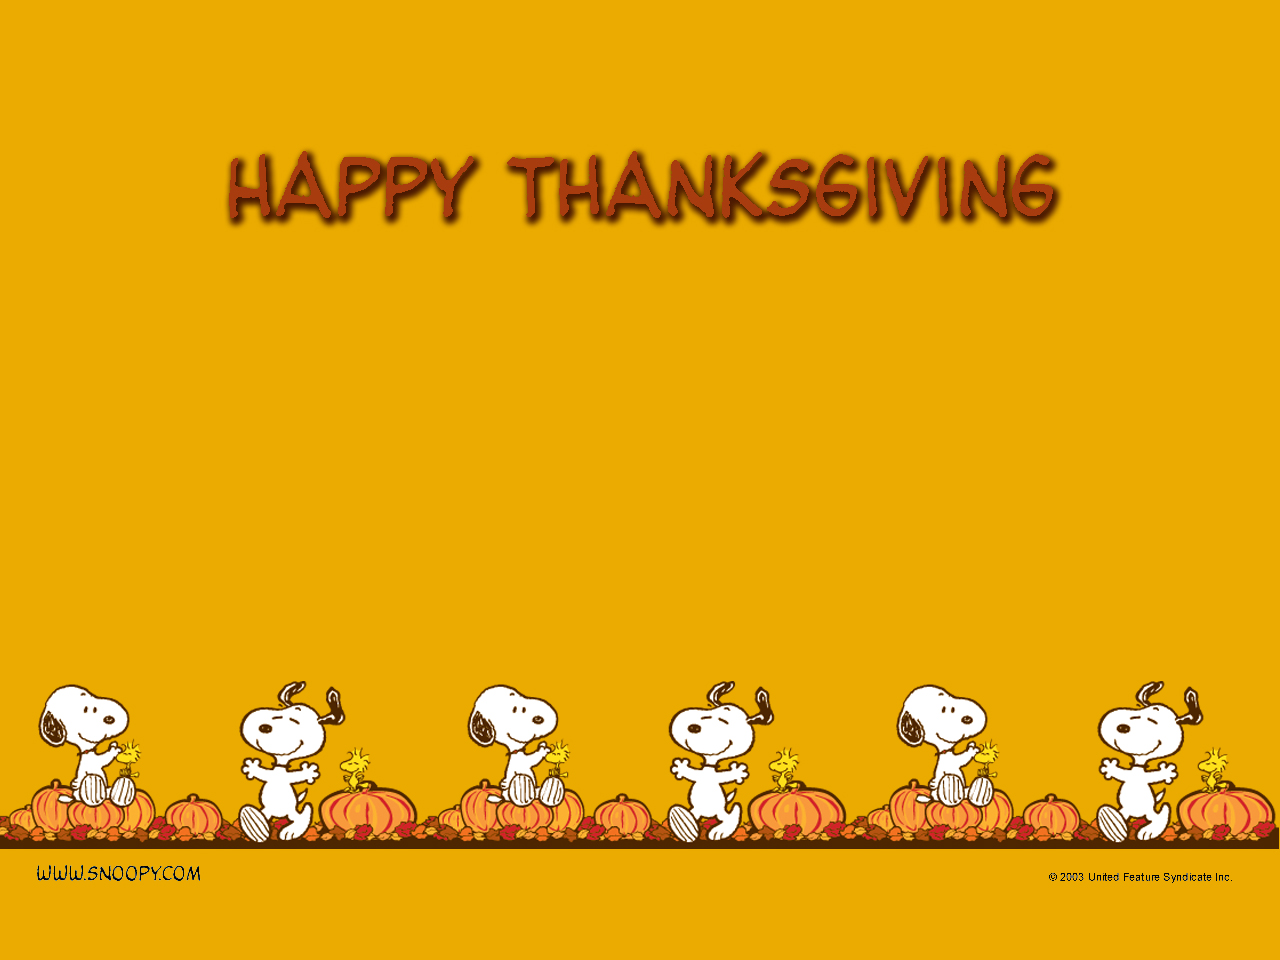 25 Thanksgiving Day Wallpapers Best Design Options 1280x960